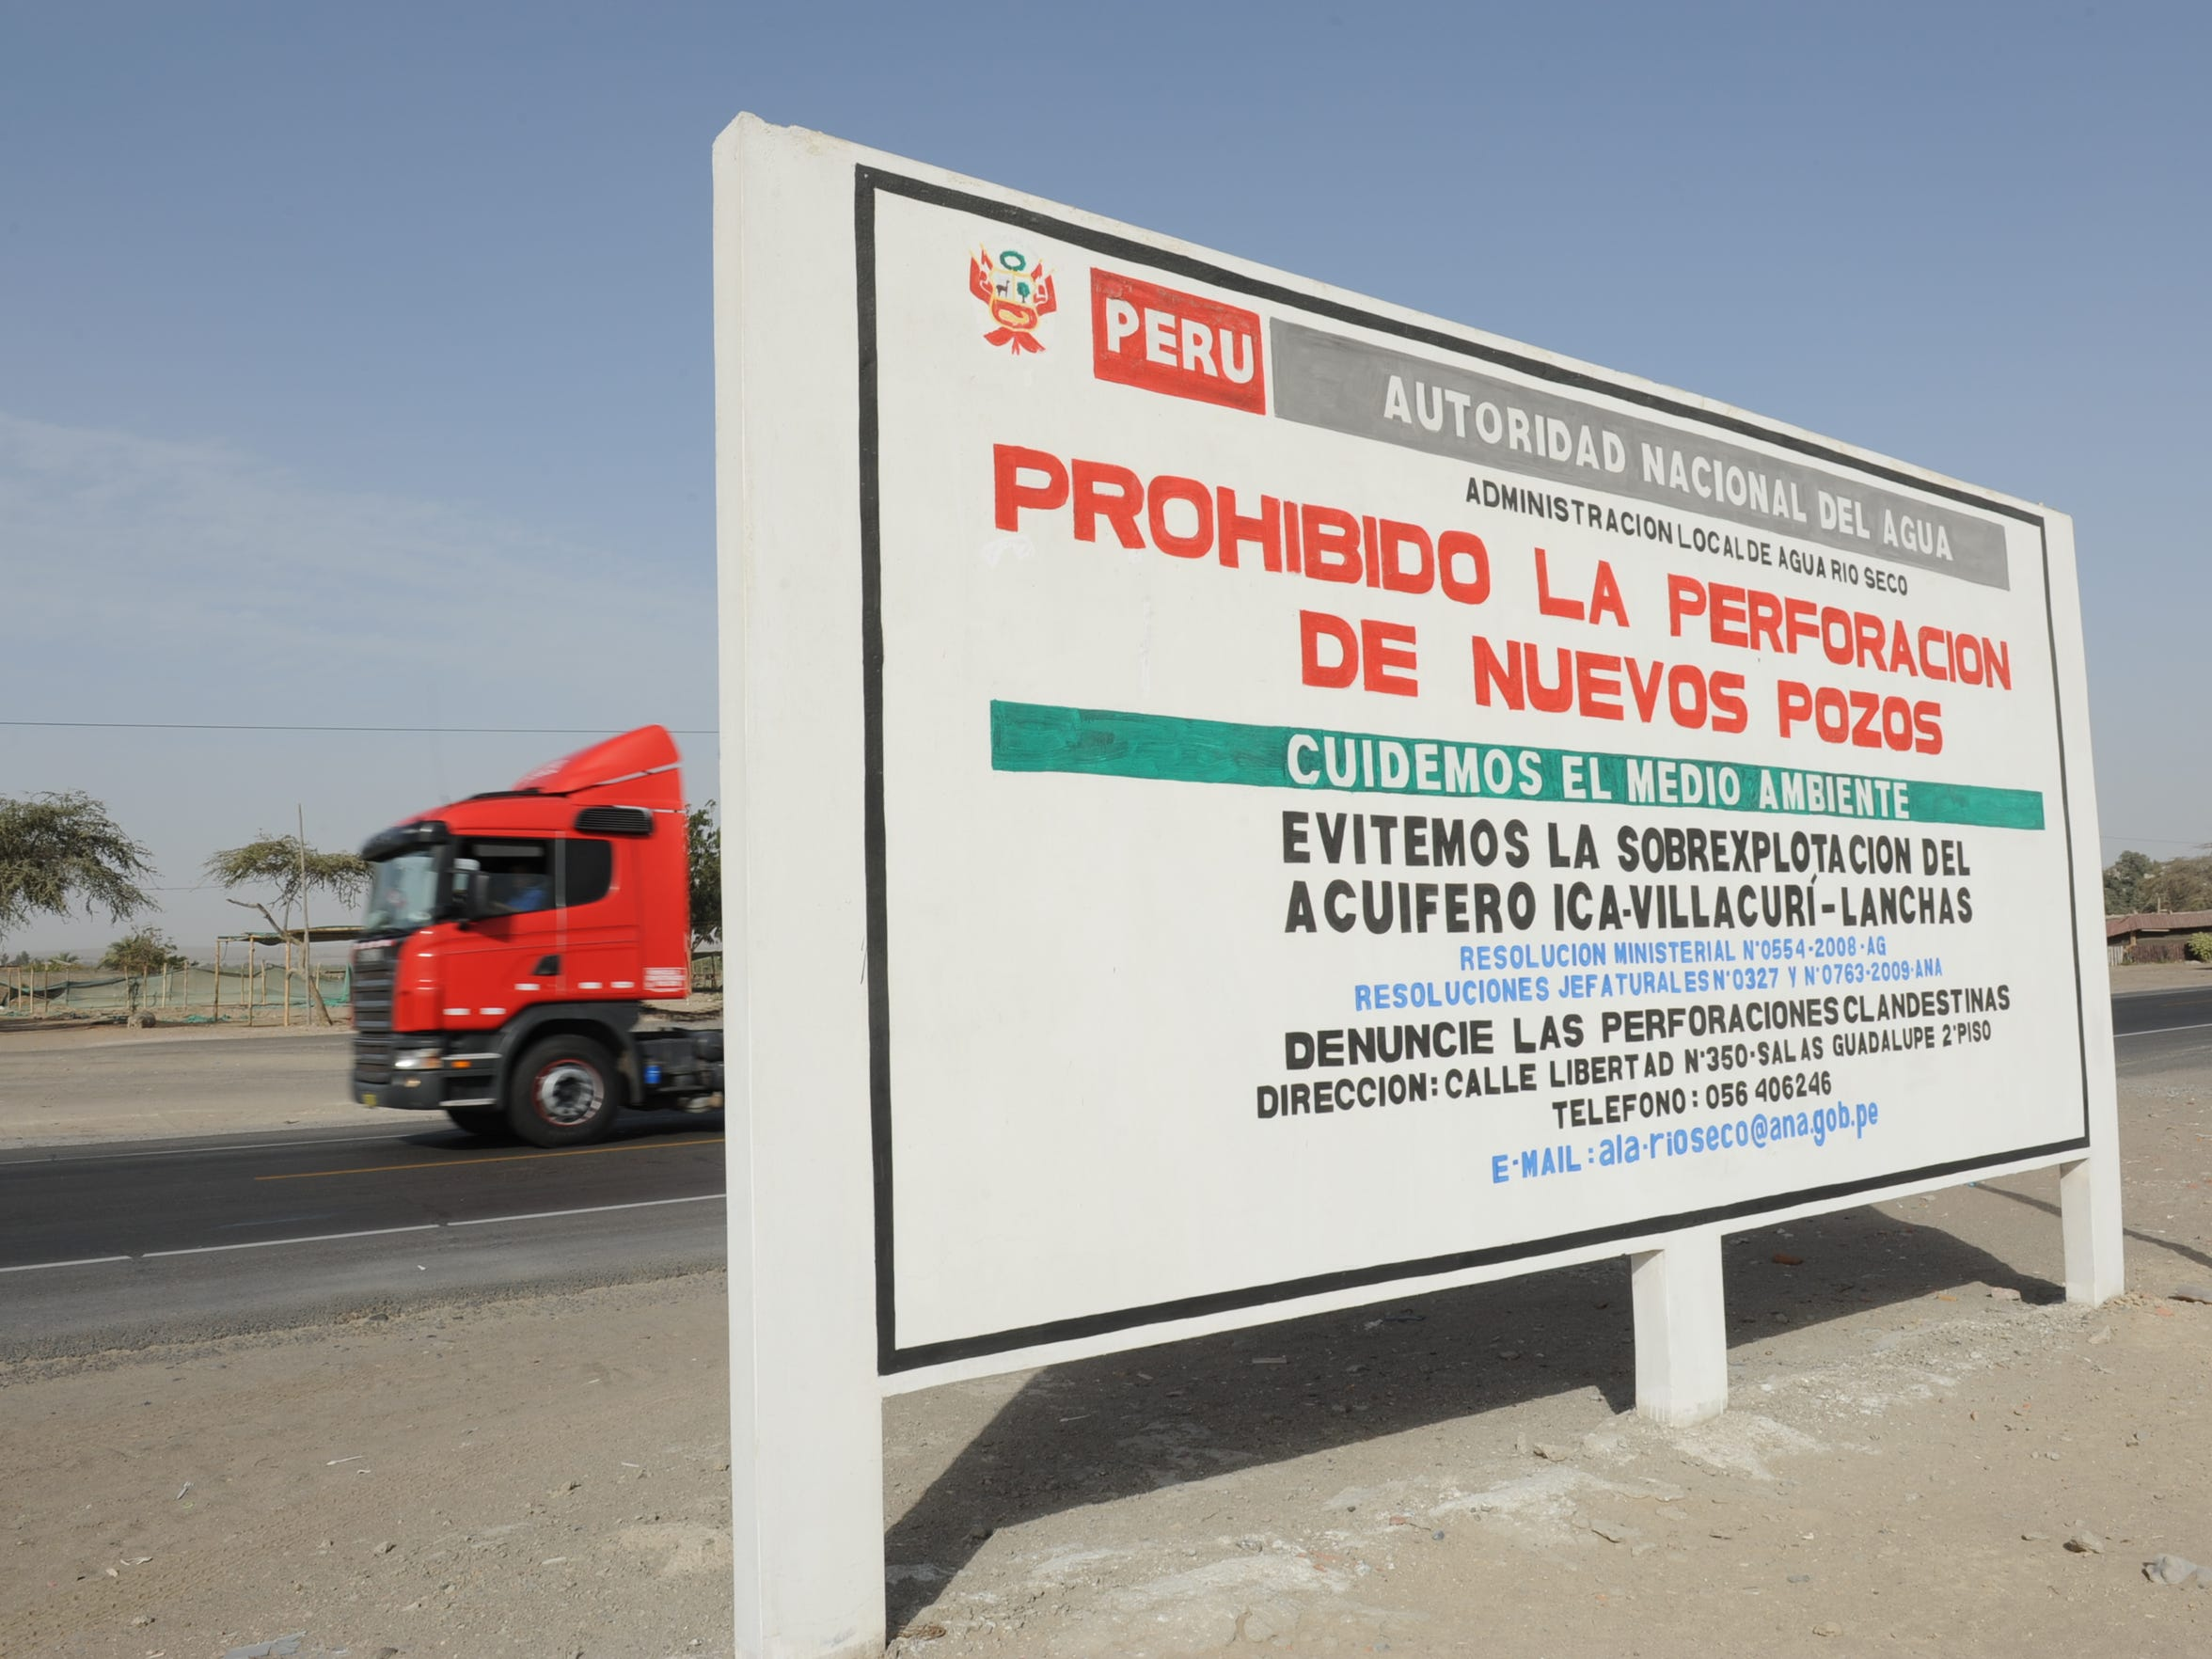 08132015 -- Pisco, Peru --